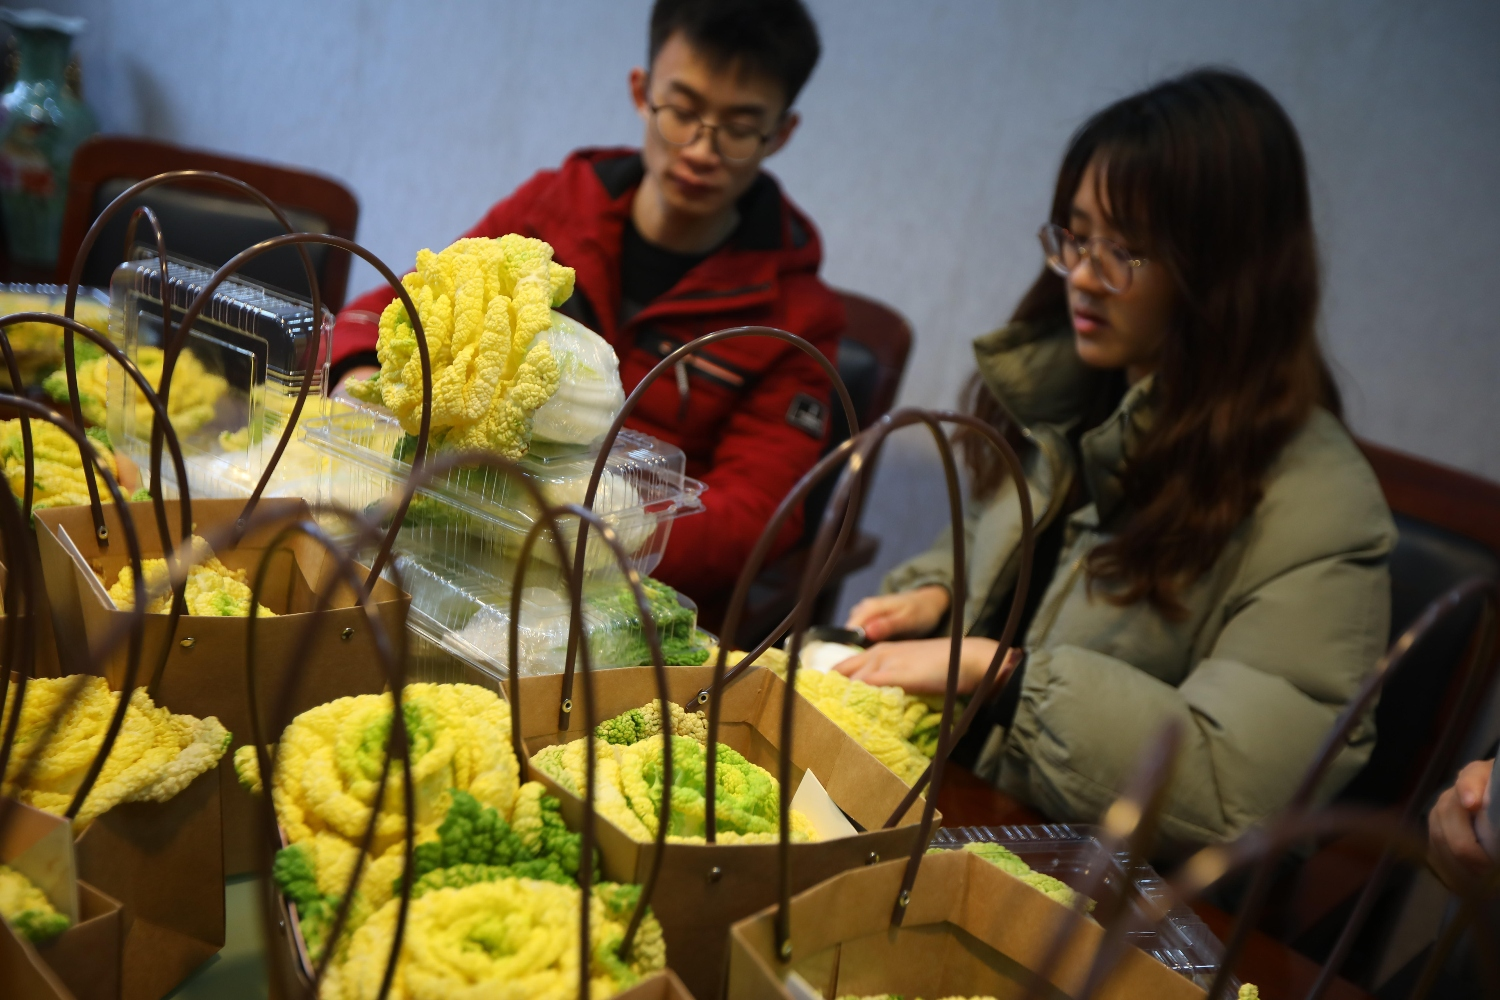 WUR best agricultural university – for now